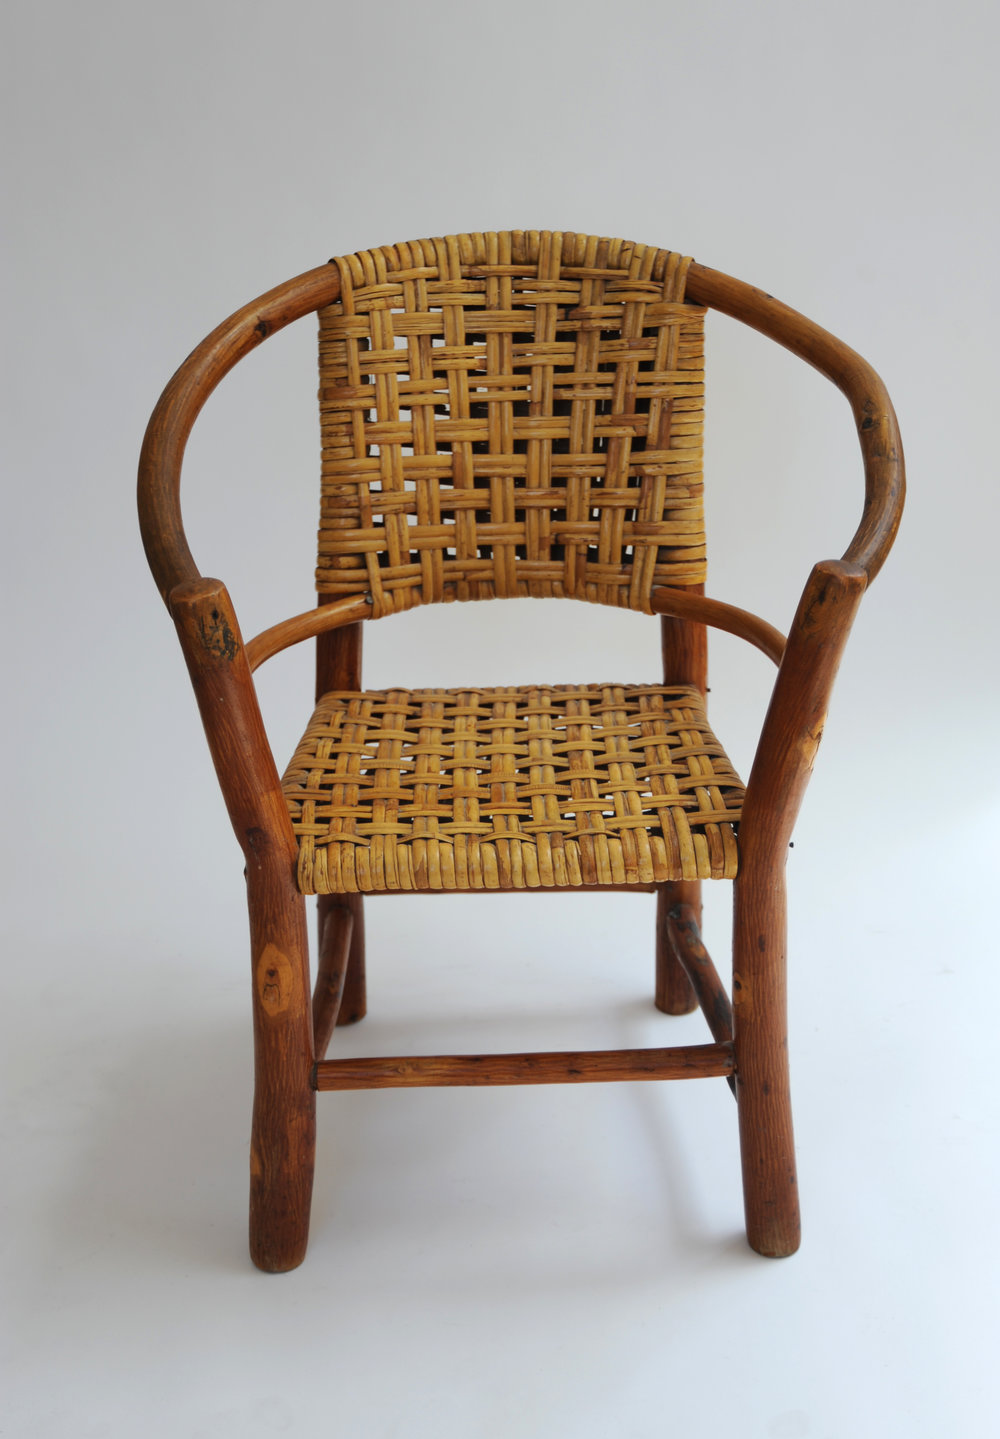 """Adirondack"" Style Child Chair Unknown Designer USA, 1935-1945 Rattan, natural molded ""tree branch"" legs H 24 in, W 19.5 in, D 13 in, SH 12.5 in LIST PRICE: $925 DESIGNER DISCOUNT PRICE: $786.25 LEAD TIME: (Showroom) QUANTITY IN STOCK: 1 ONLINE PLATFORMS: kM Web, Artsy, 1st Dibs"